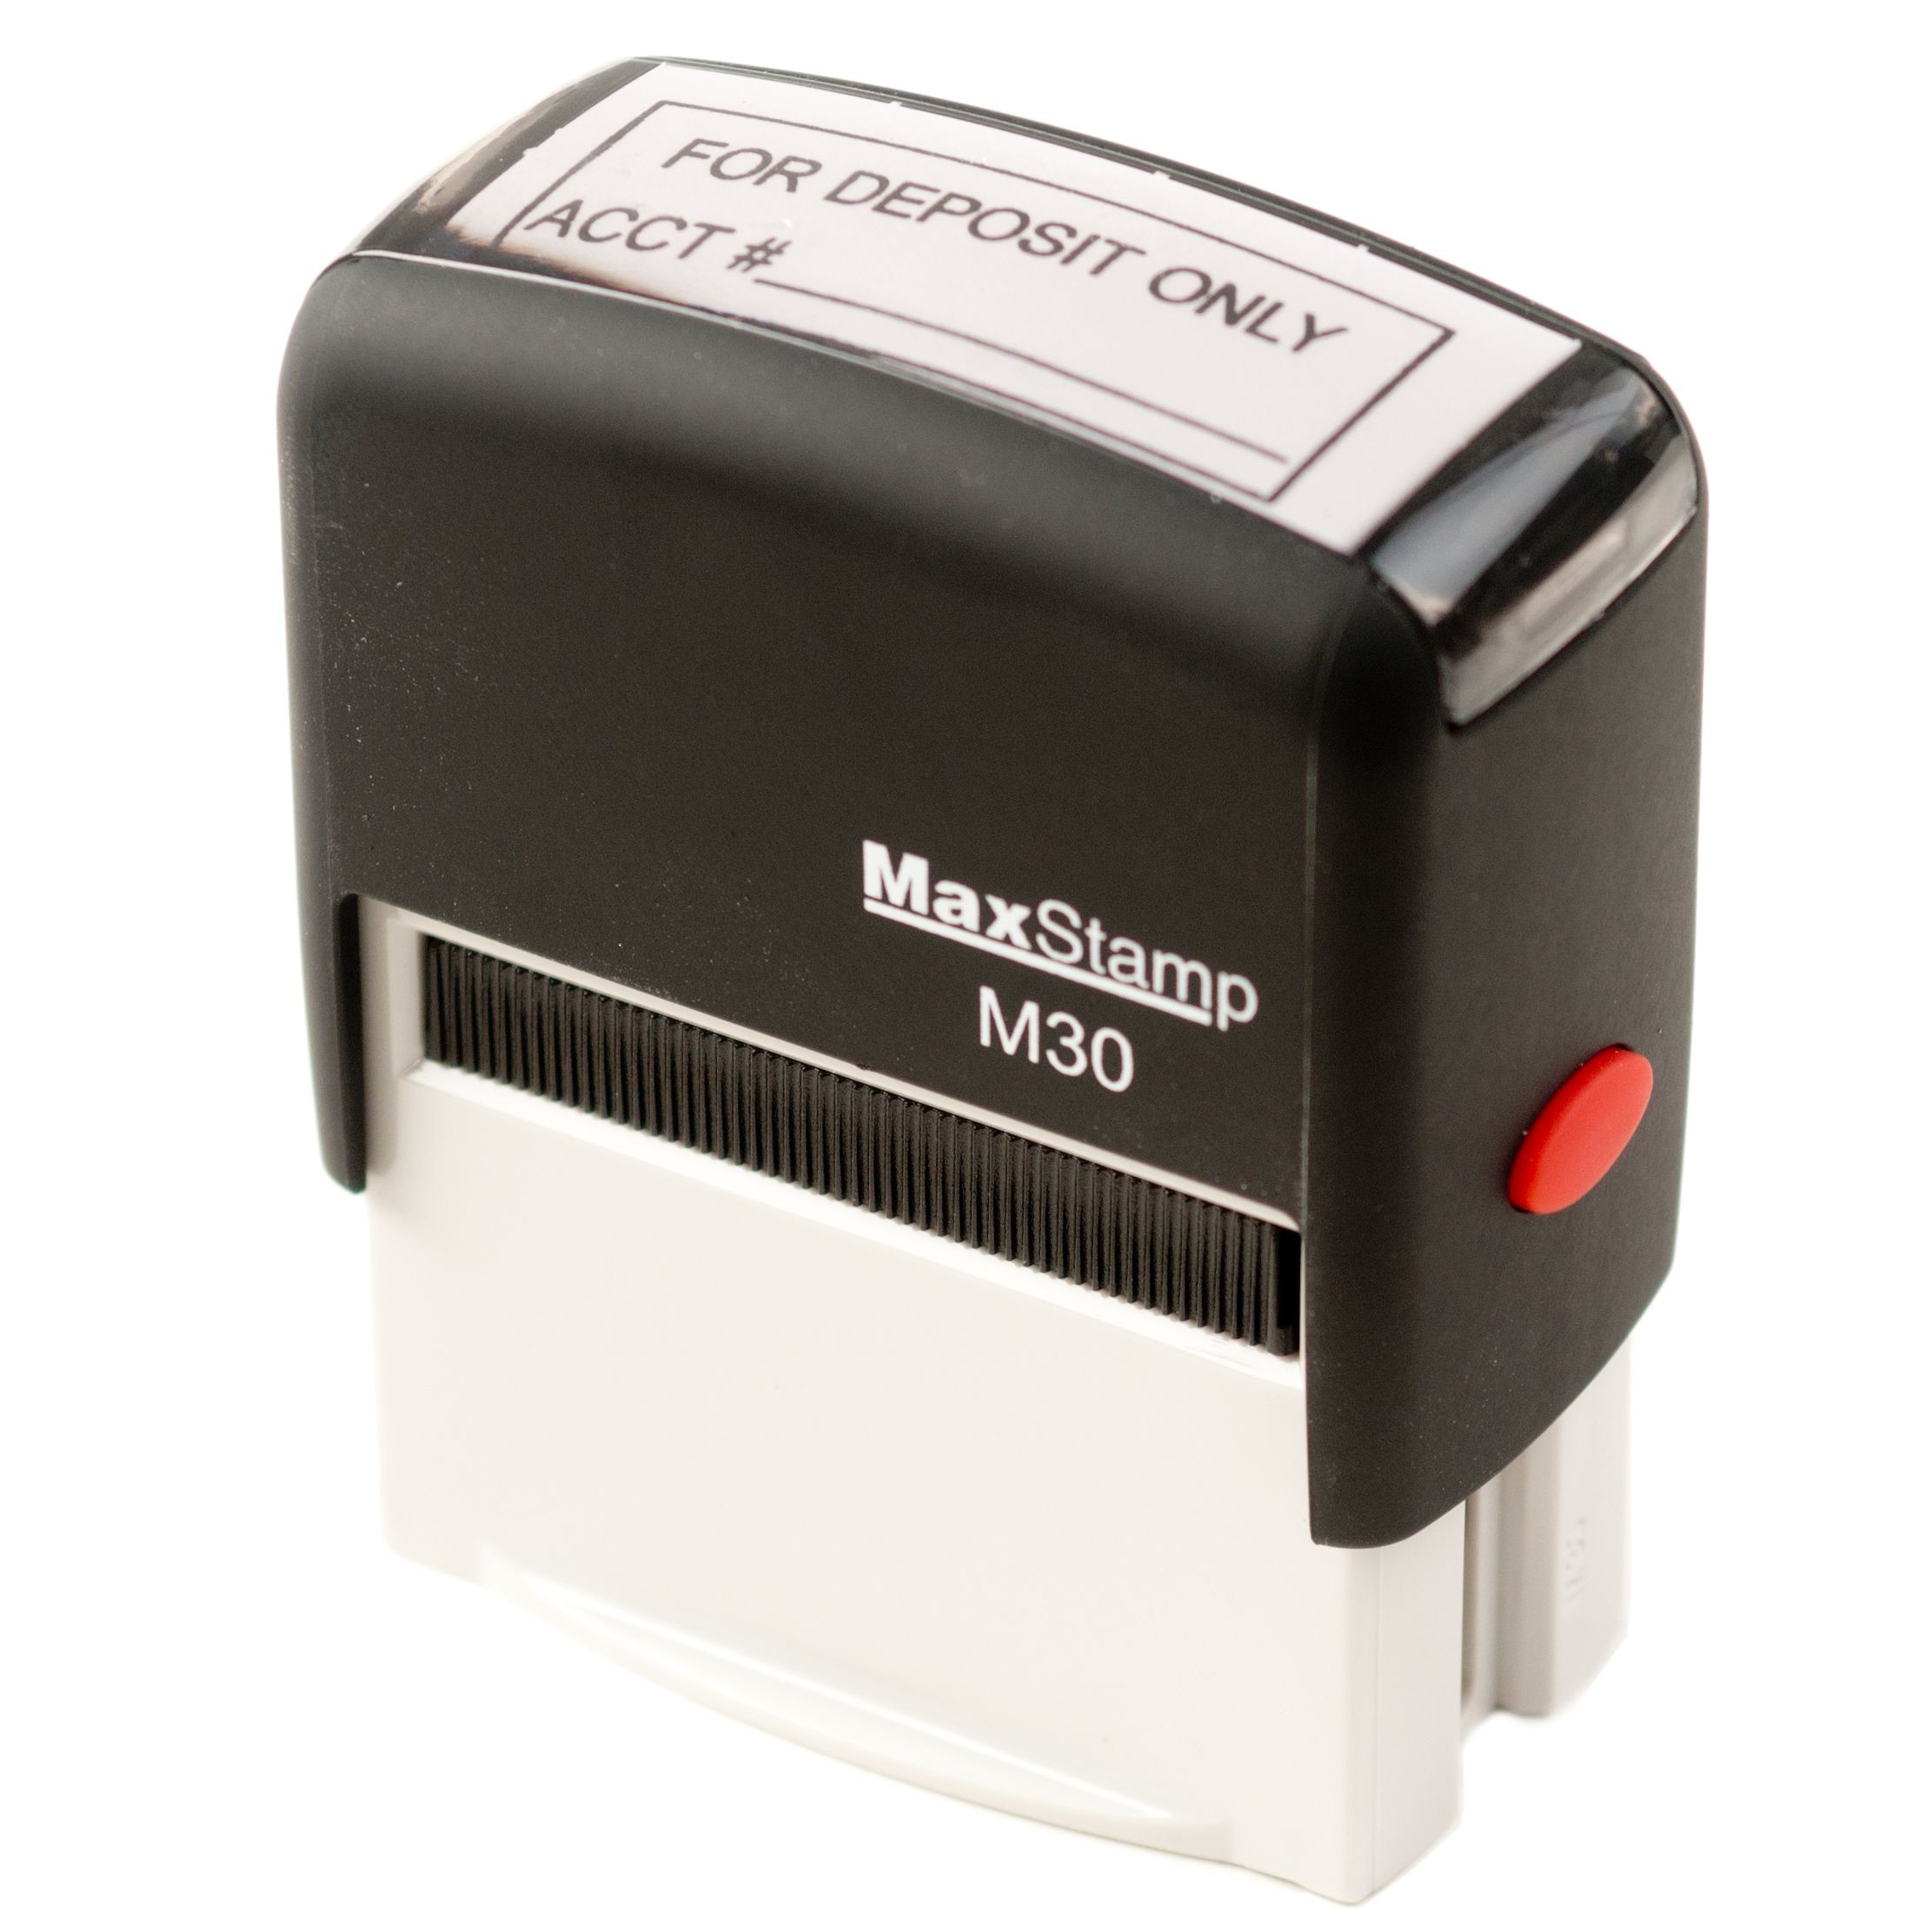 Self-Inking Stamp, 1 color ink - FOR DEPOSIT ONLY